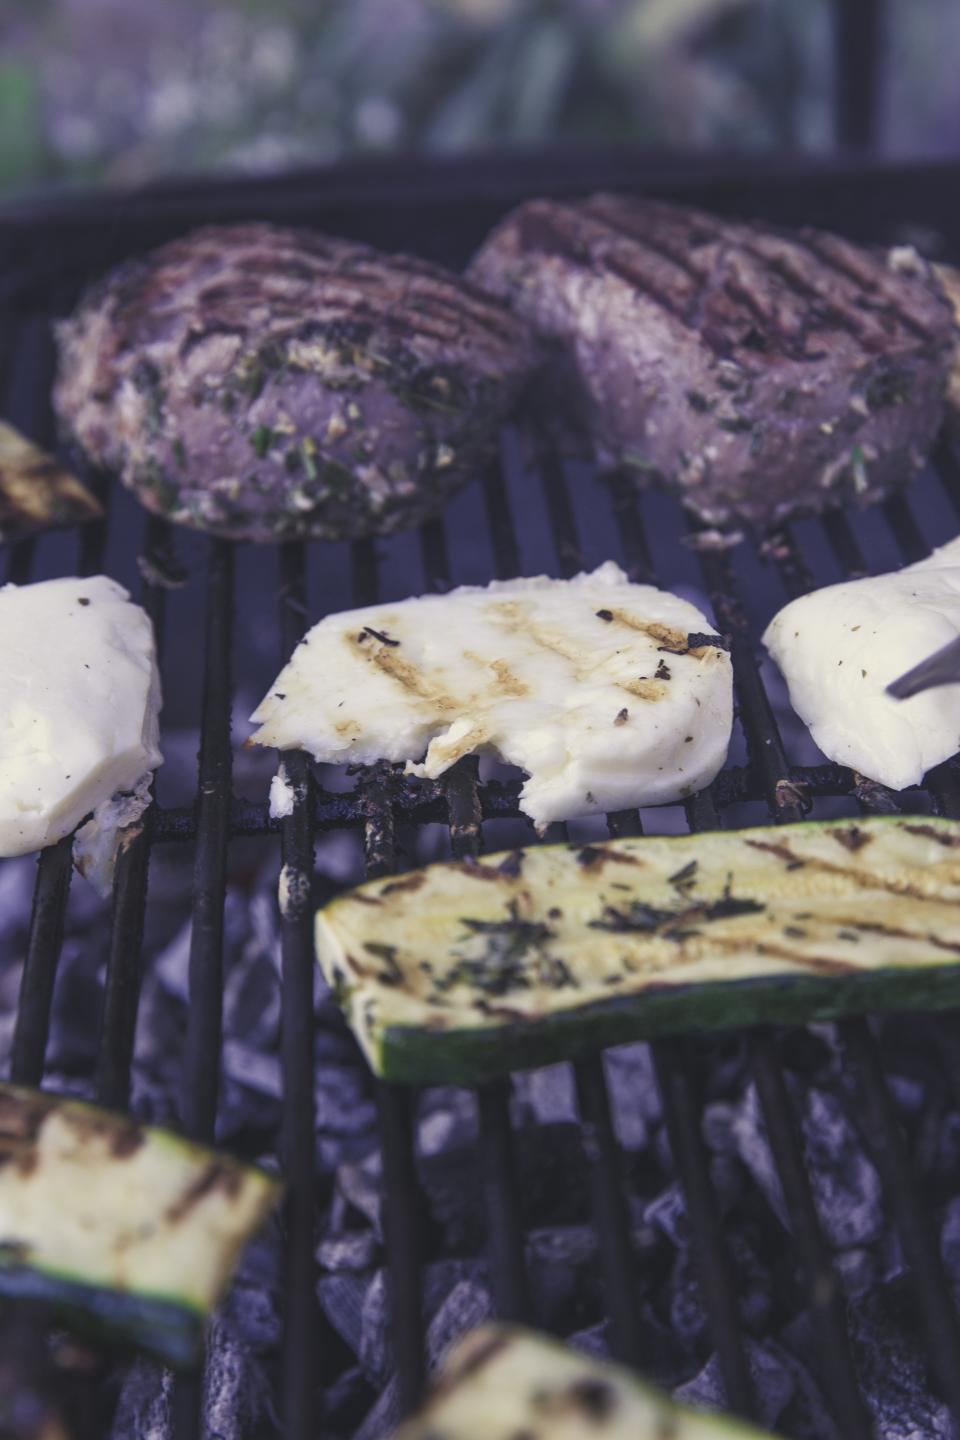 Free stock photo of grilled food